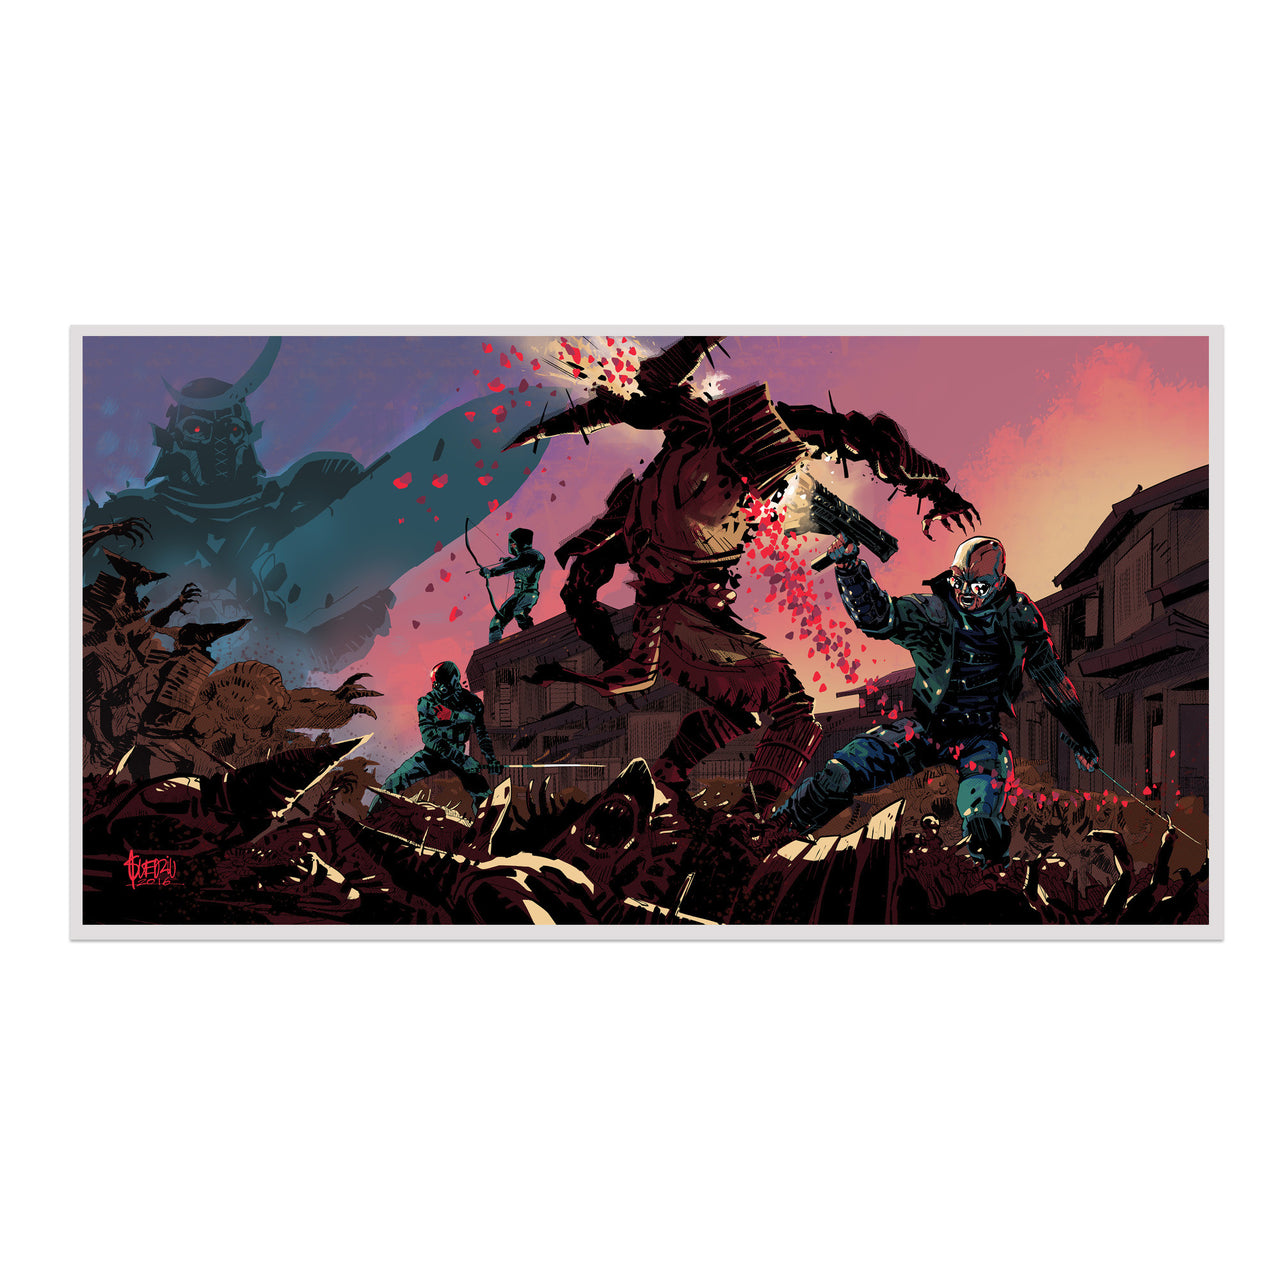 Shadow Warrior 2 (Limited Edition Print)